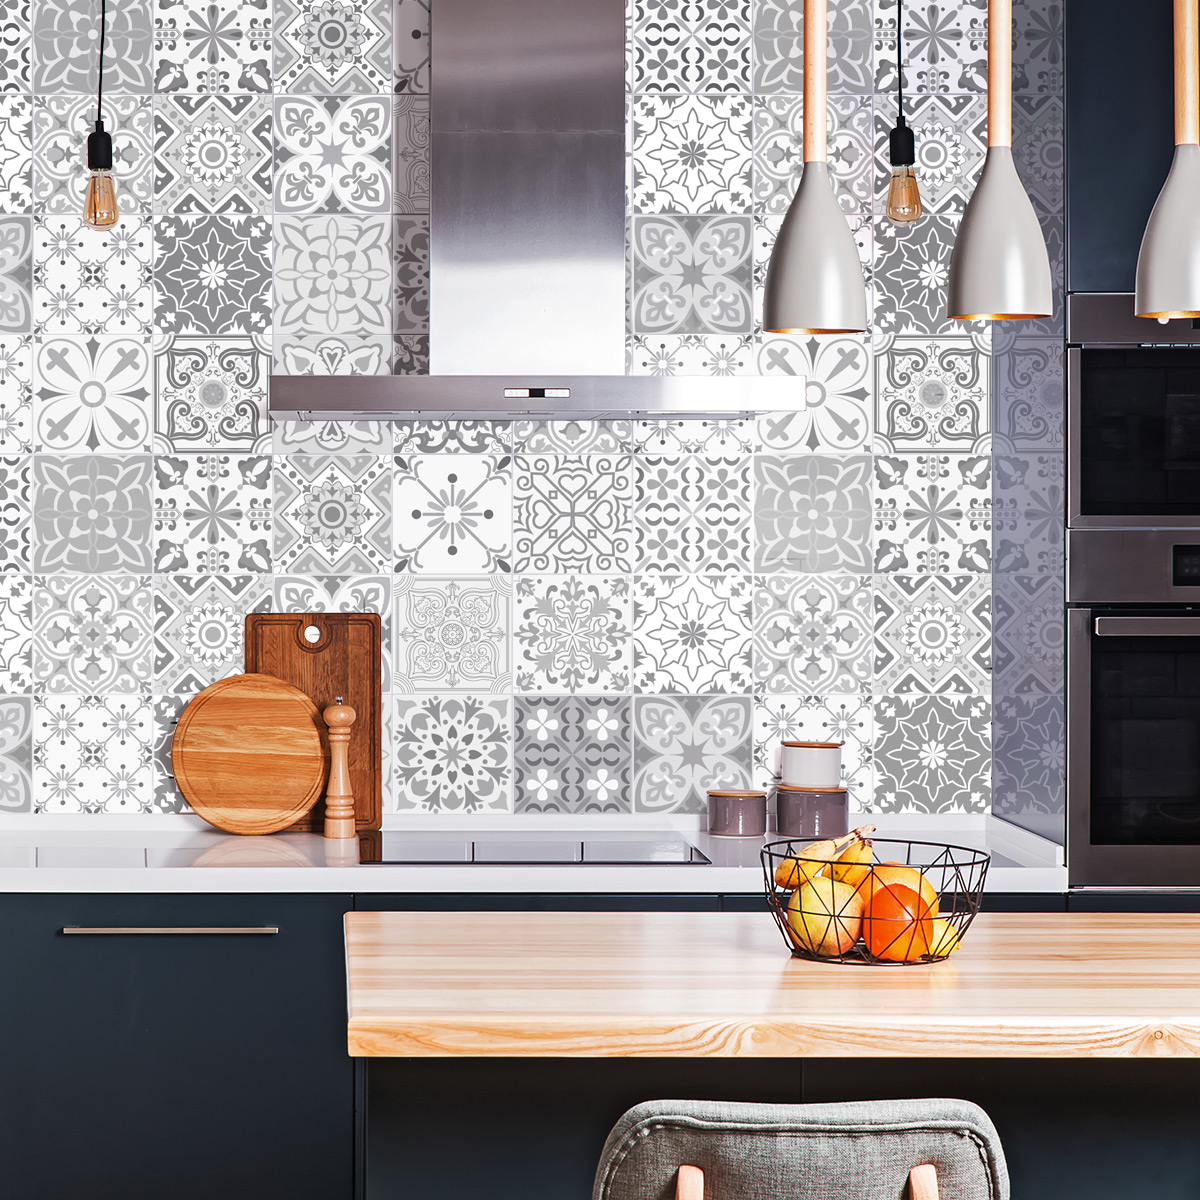 Stickers Carrelage Cuisine: 24 Stickers Carreaux De Ciment Nuances De Gris Gythio